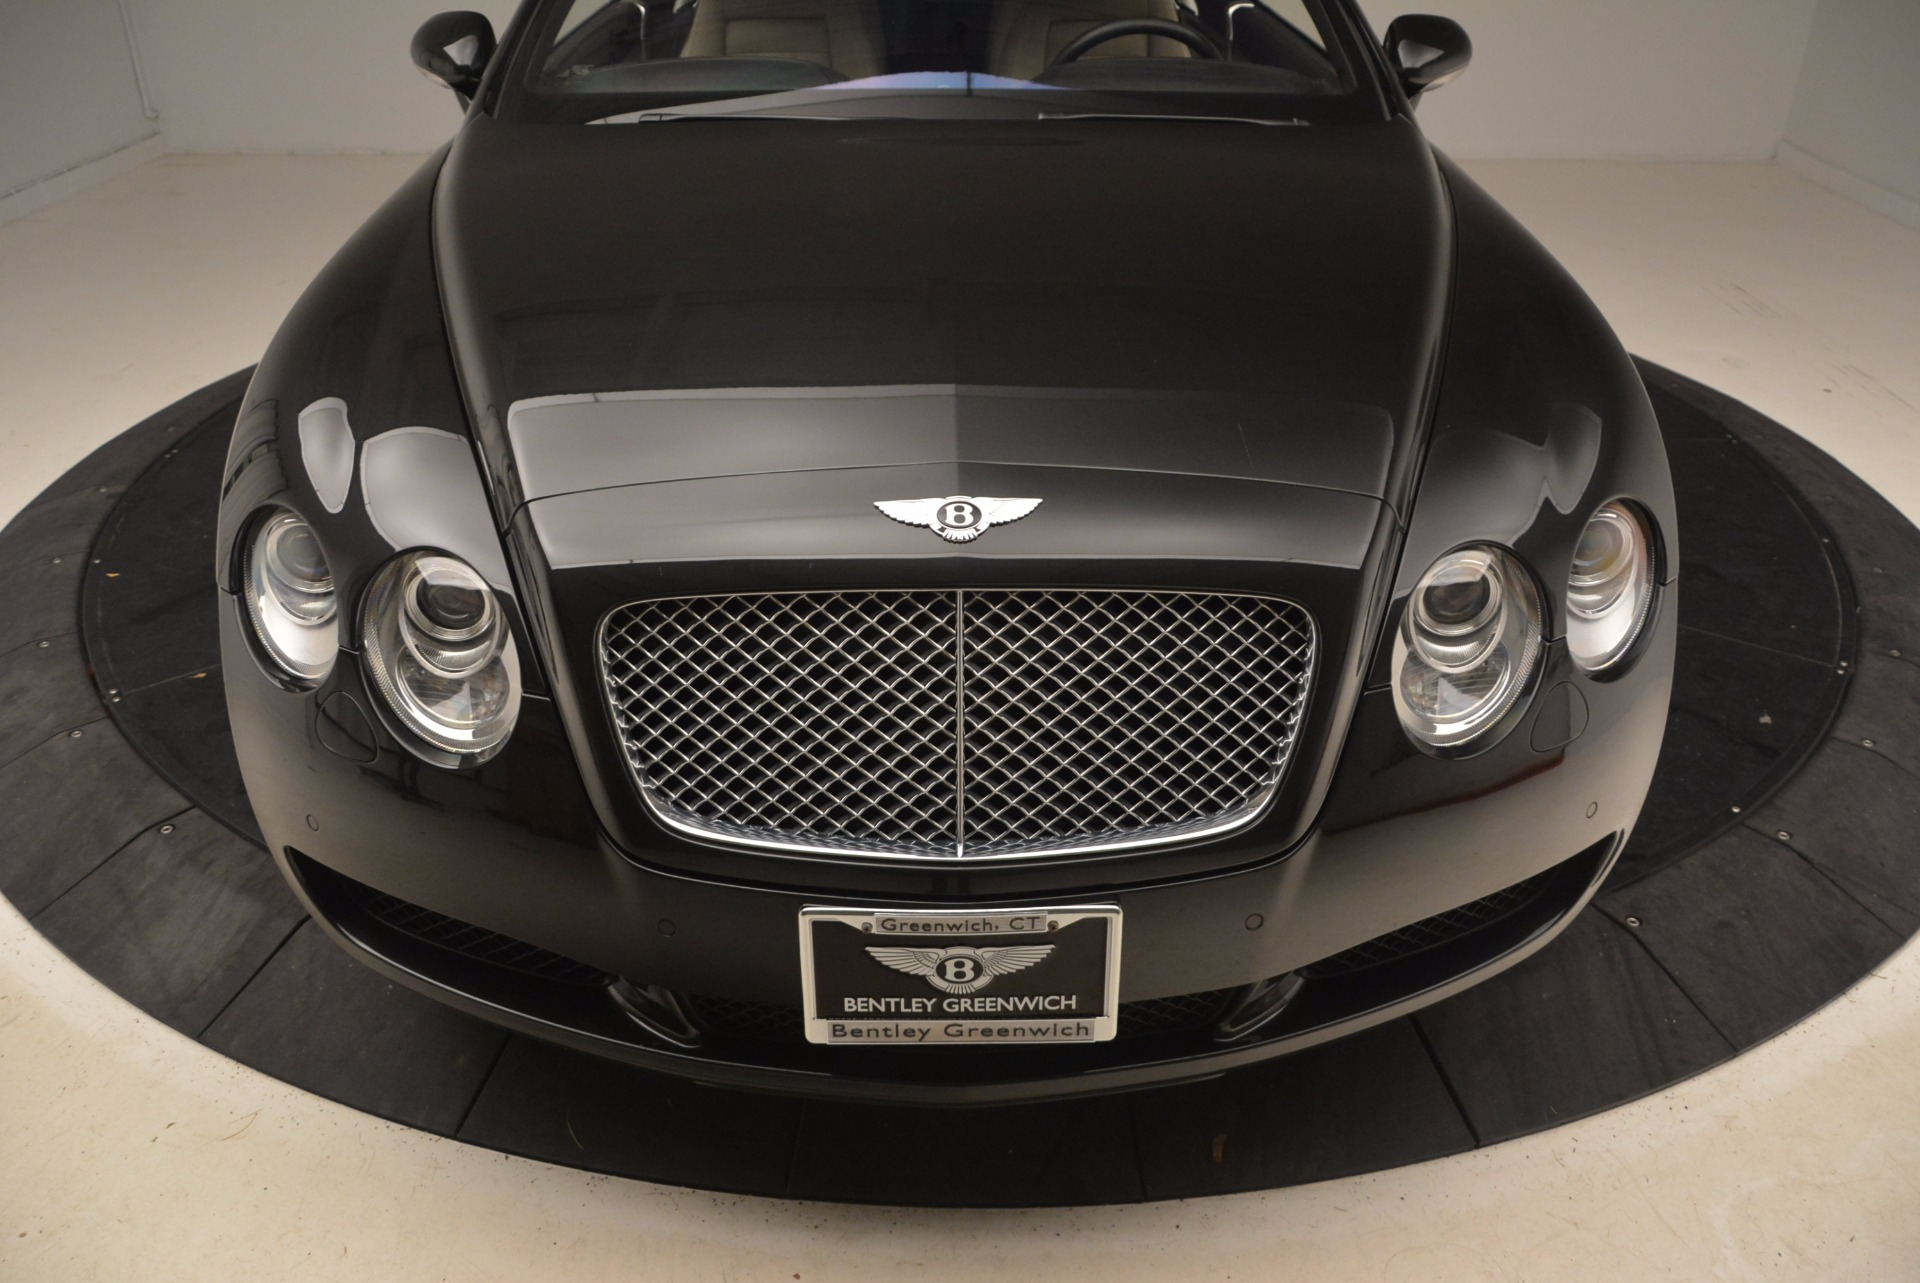 Used 2005 Bentley Continental GT W12 For Sale In Greenwich, CT 1677_p13